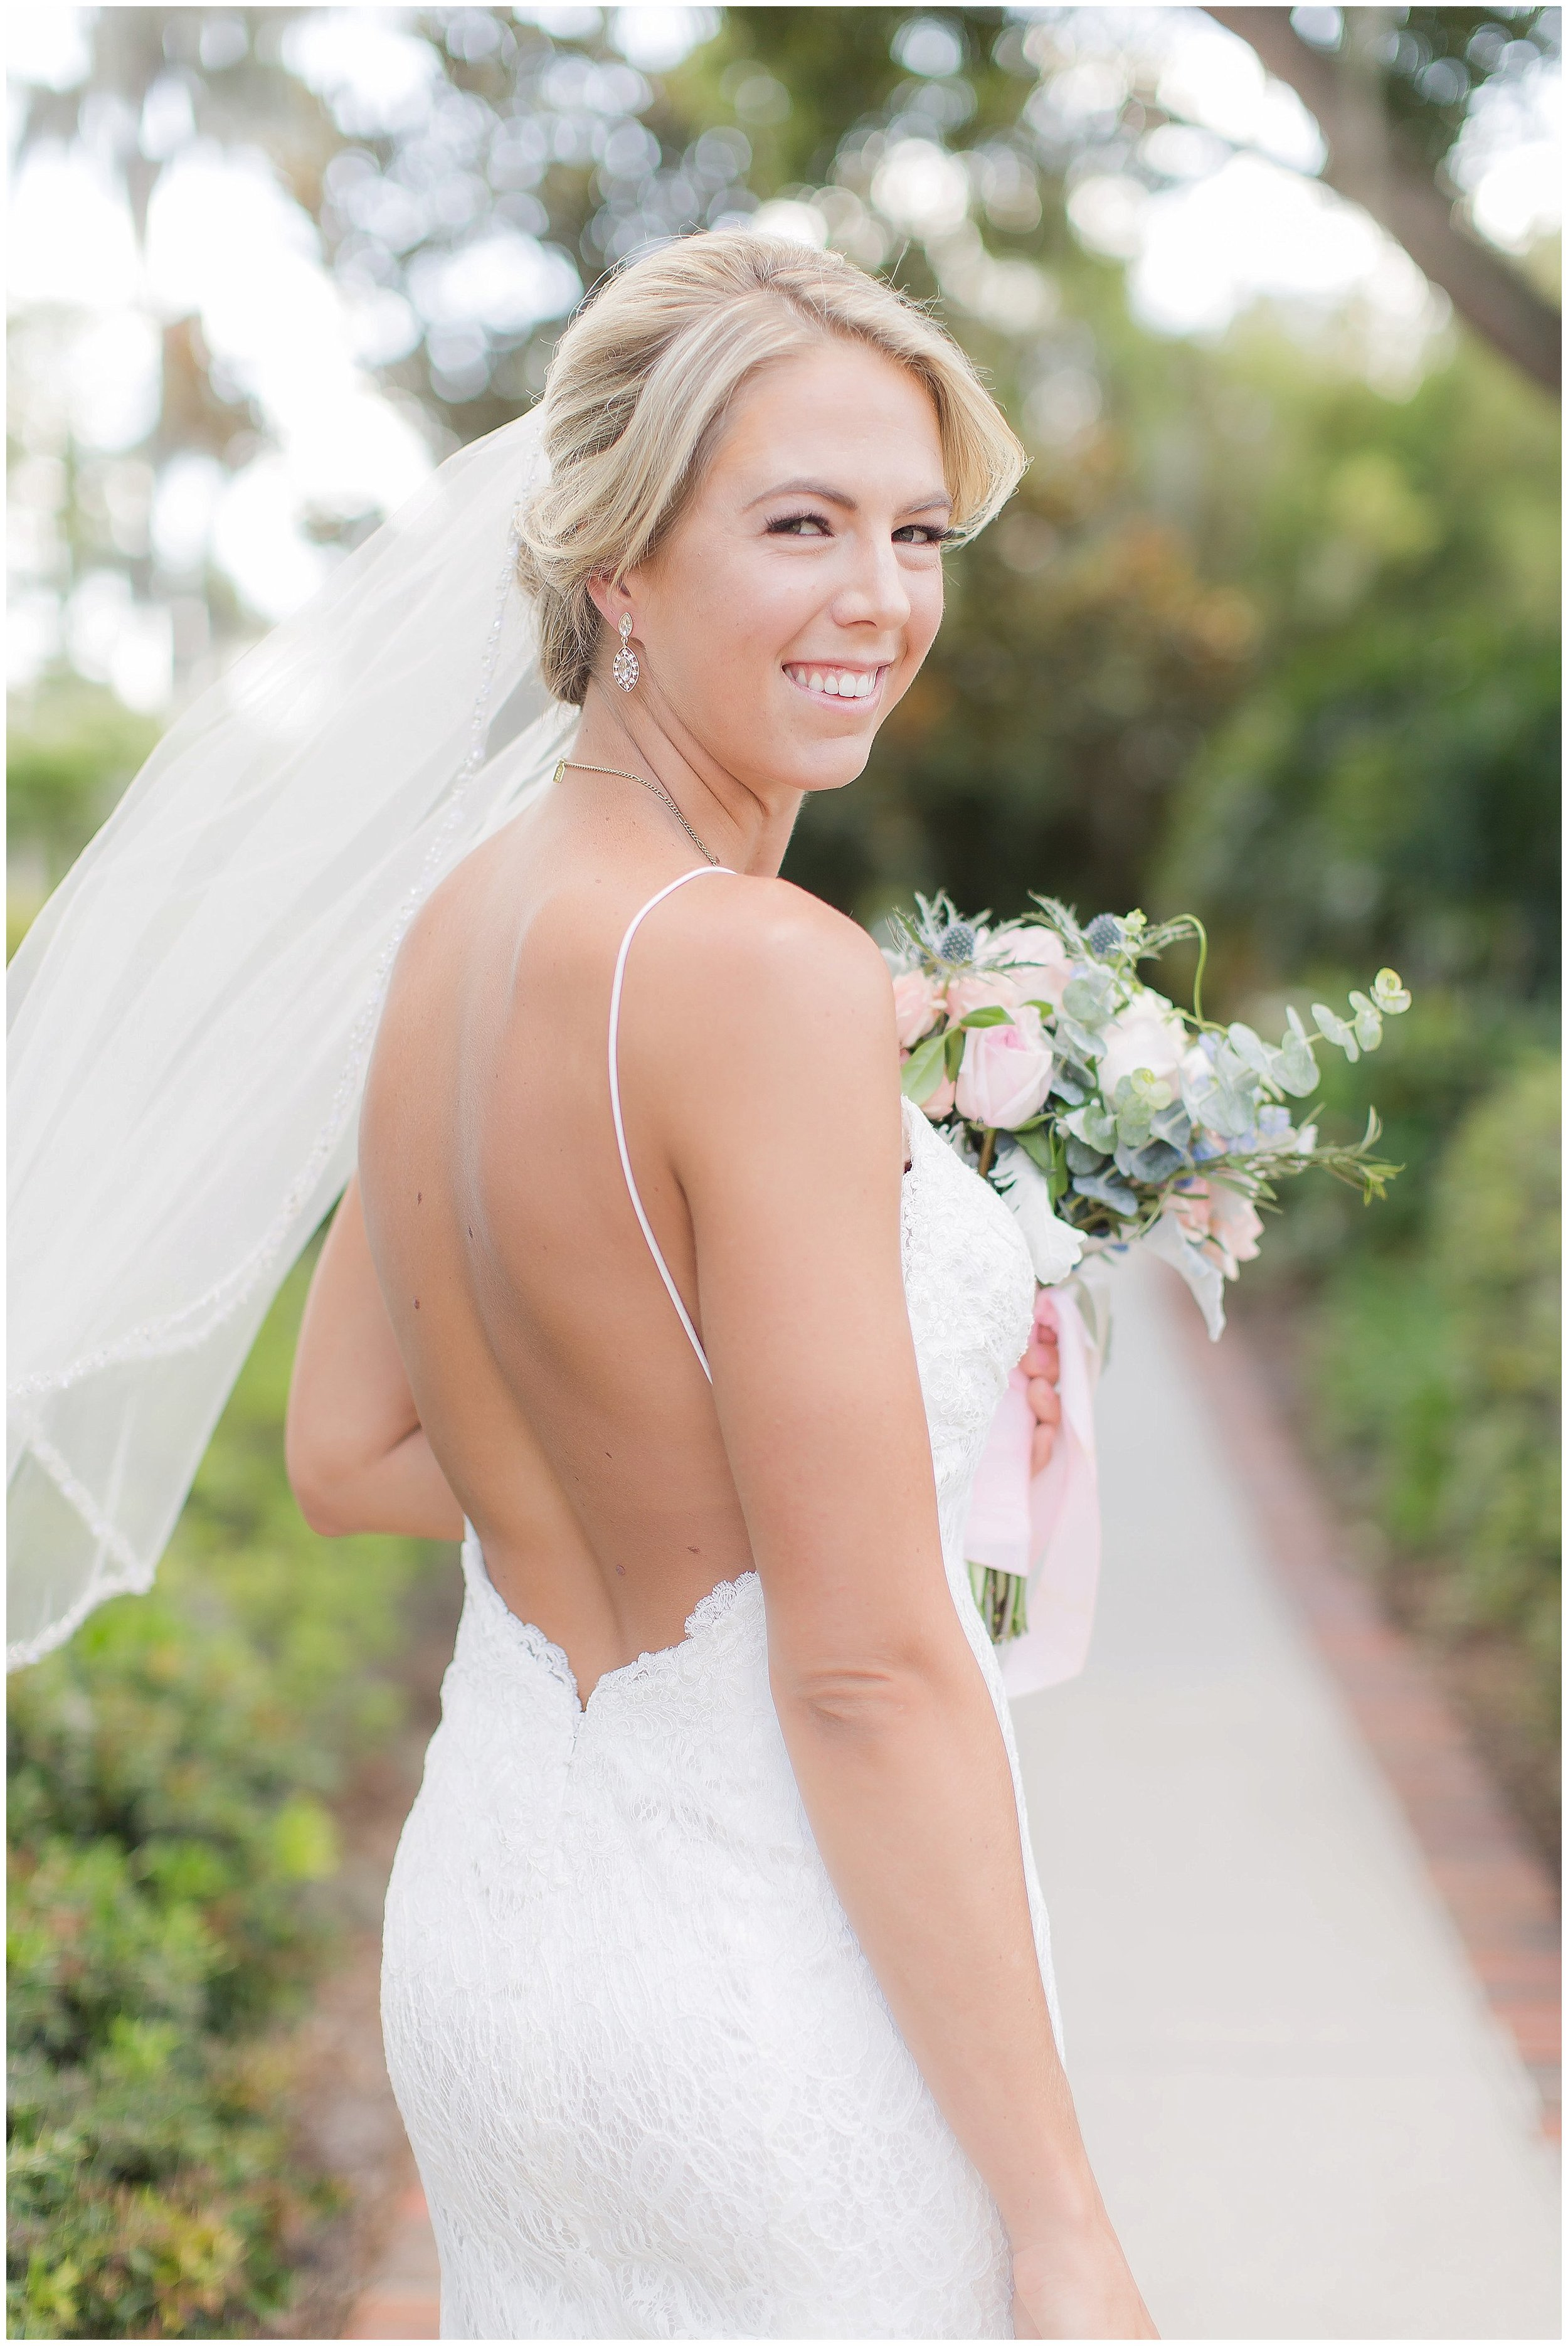 Bridal Portrait in summer gown with low cut back and short veil